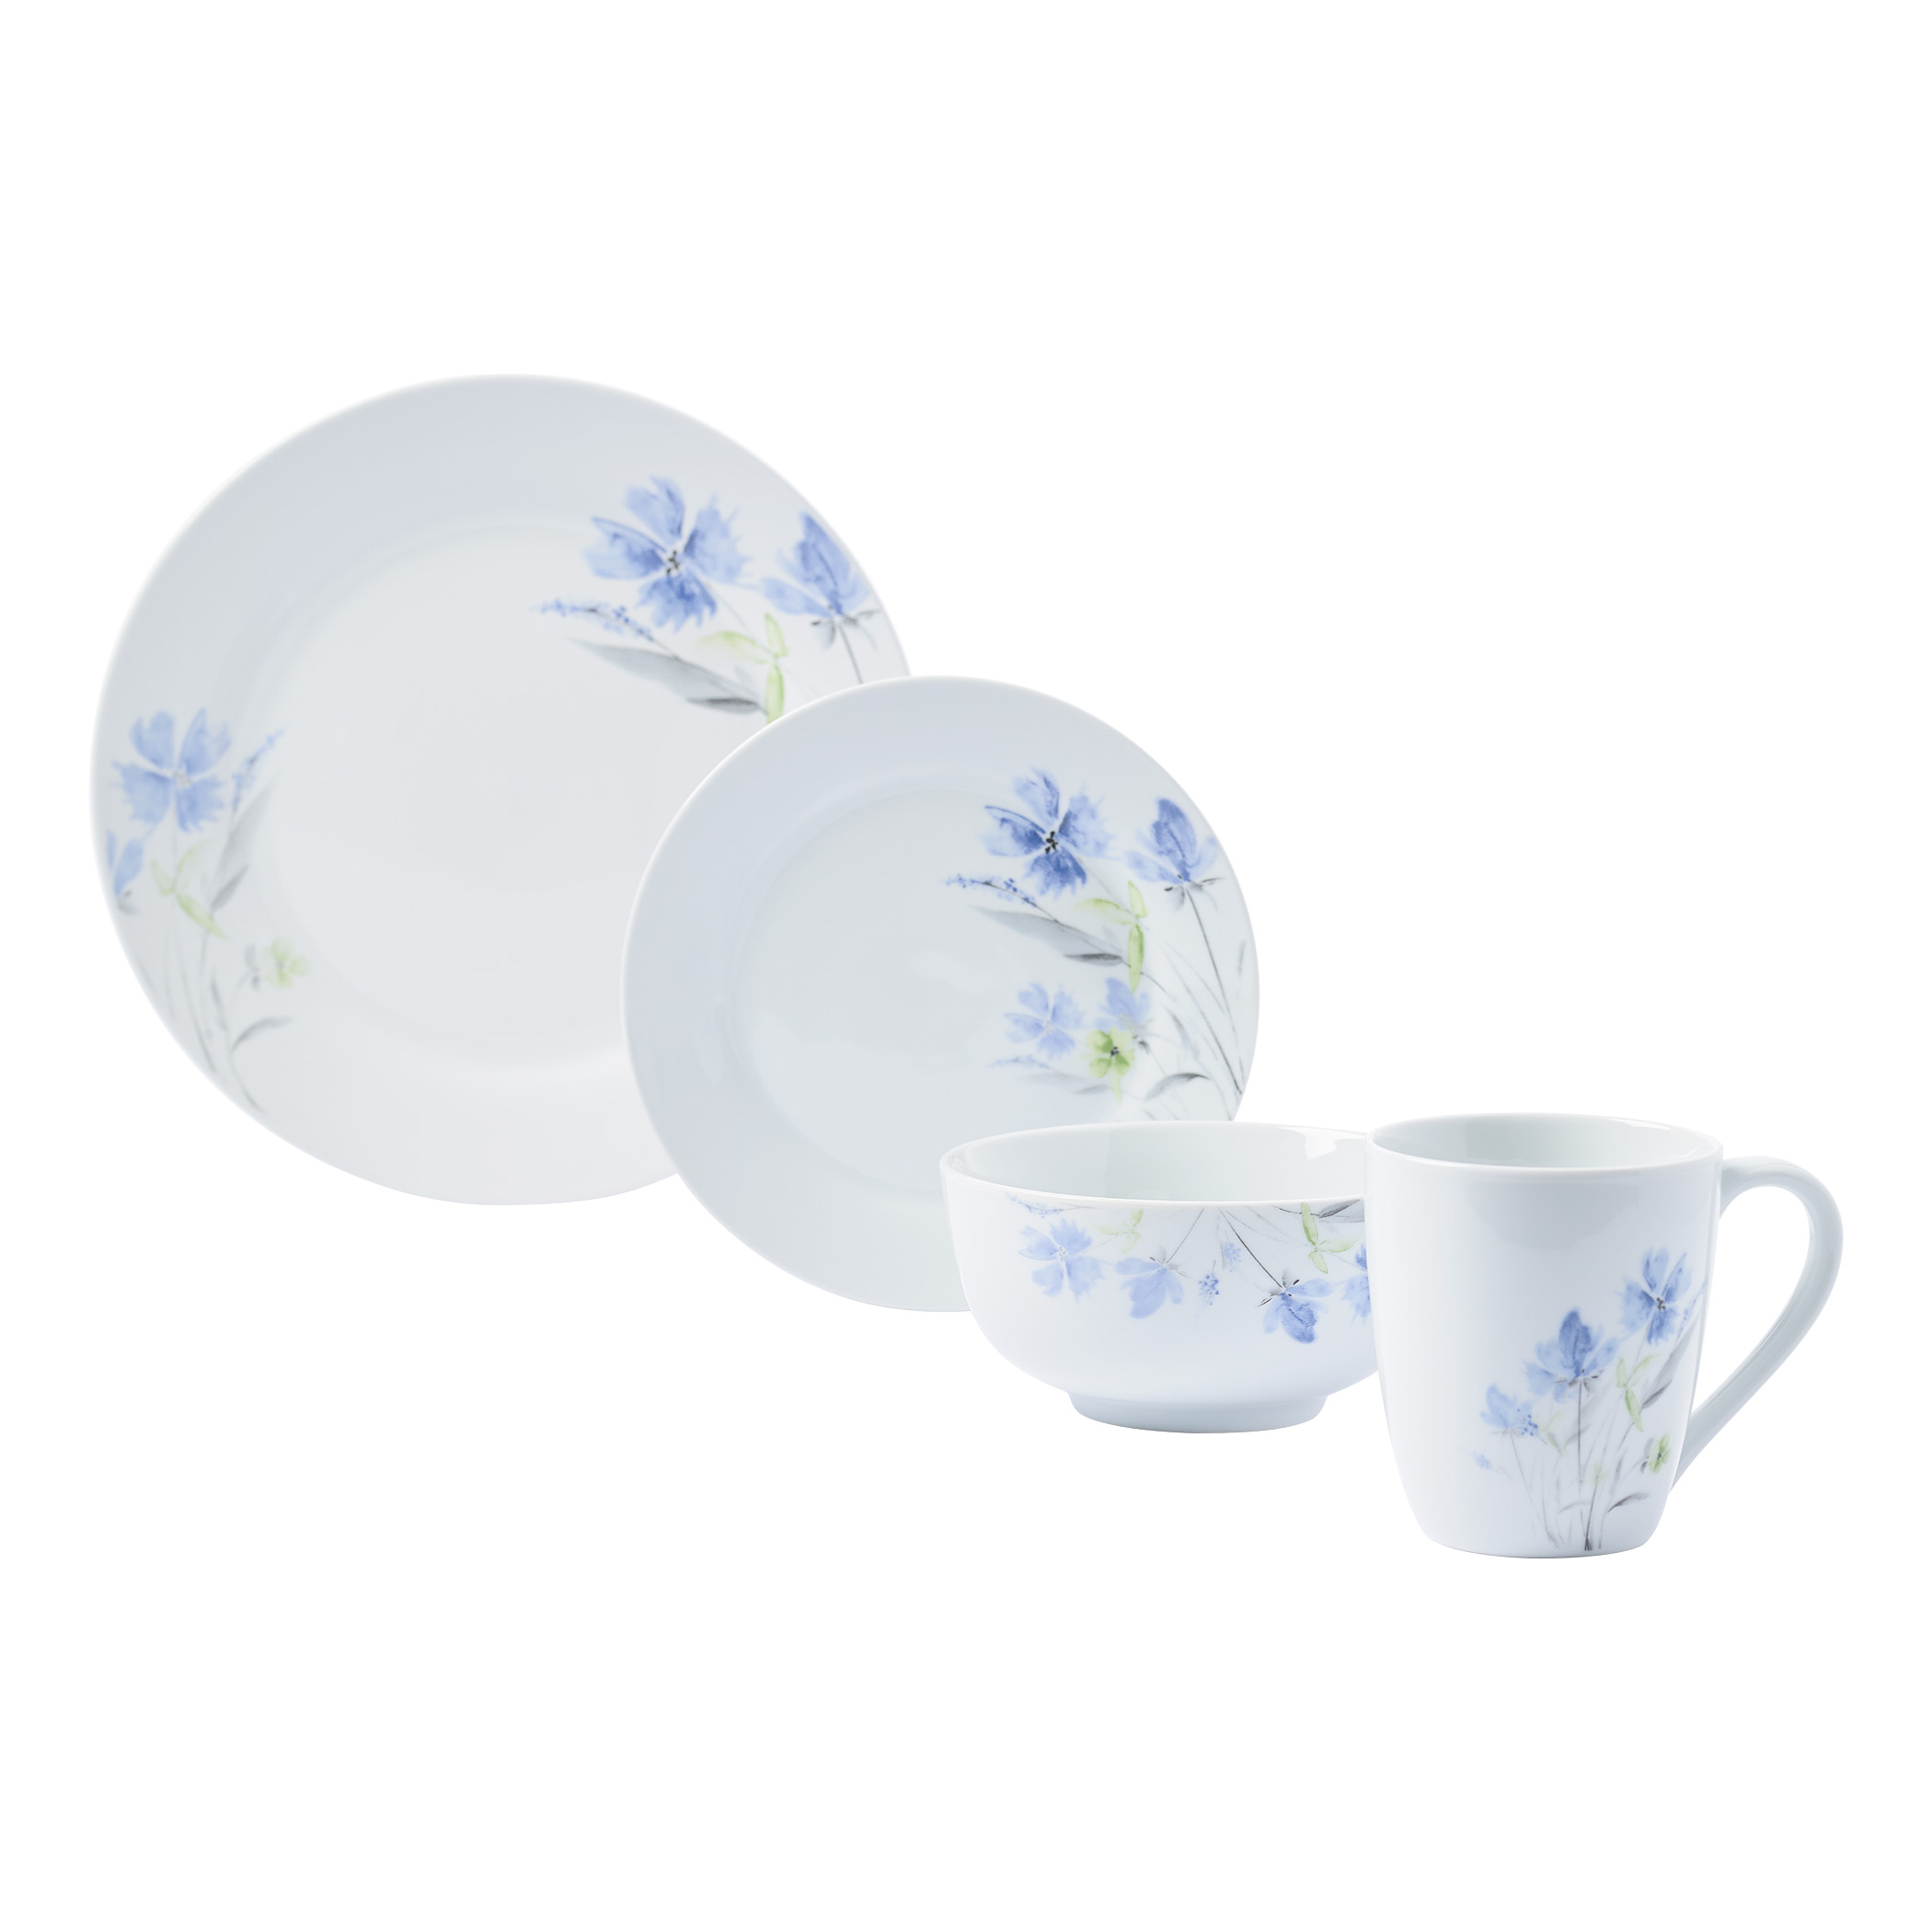 TTU-83700-EC-16 Piece Porcelain Dinnerware Set by Tabletops Gallery ...  sc 1 st  Tabletops Unlimited & 16 Piece Porcelain Dinnerware Set by Tabletops Gallery® | TTU